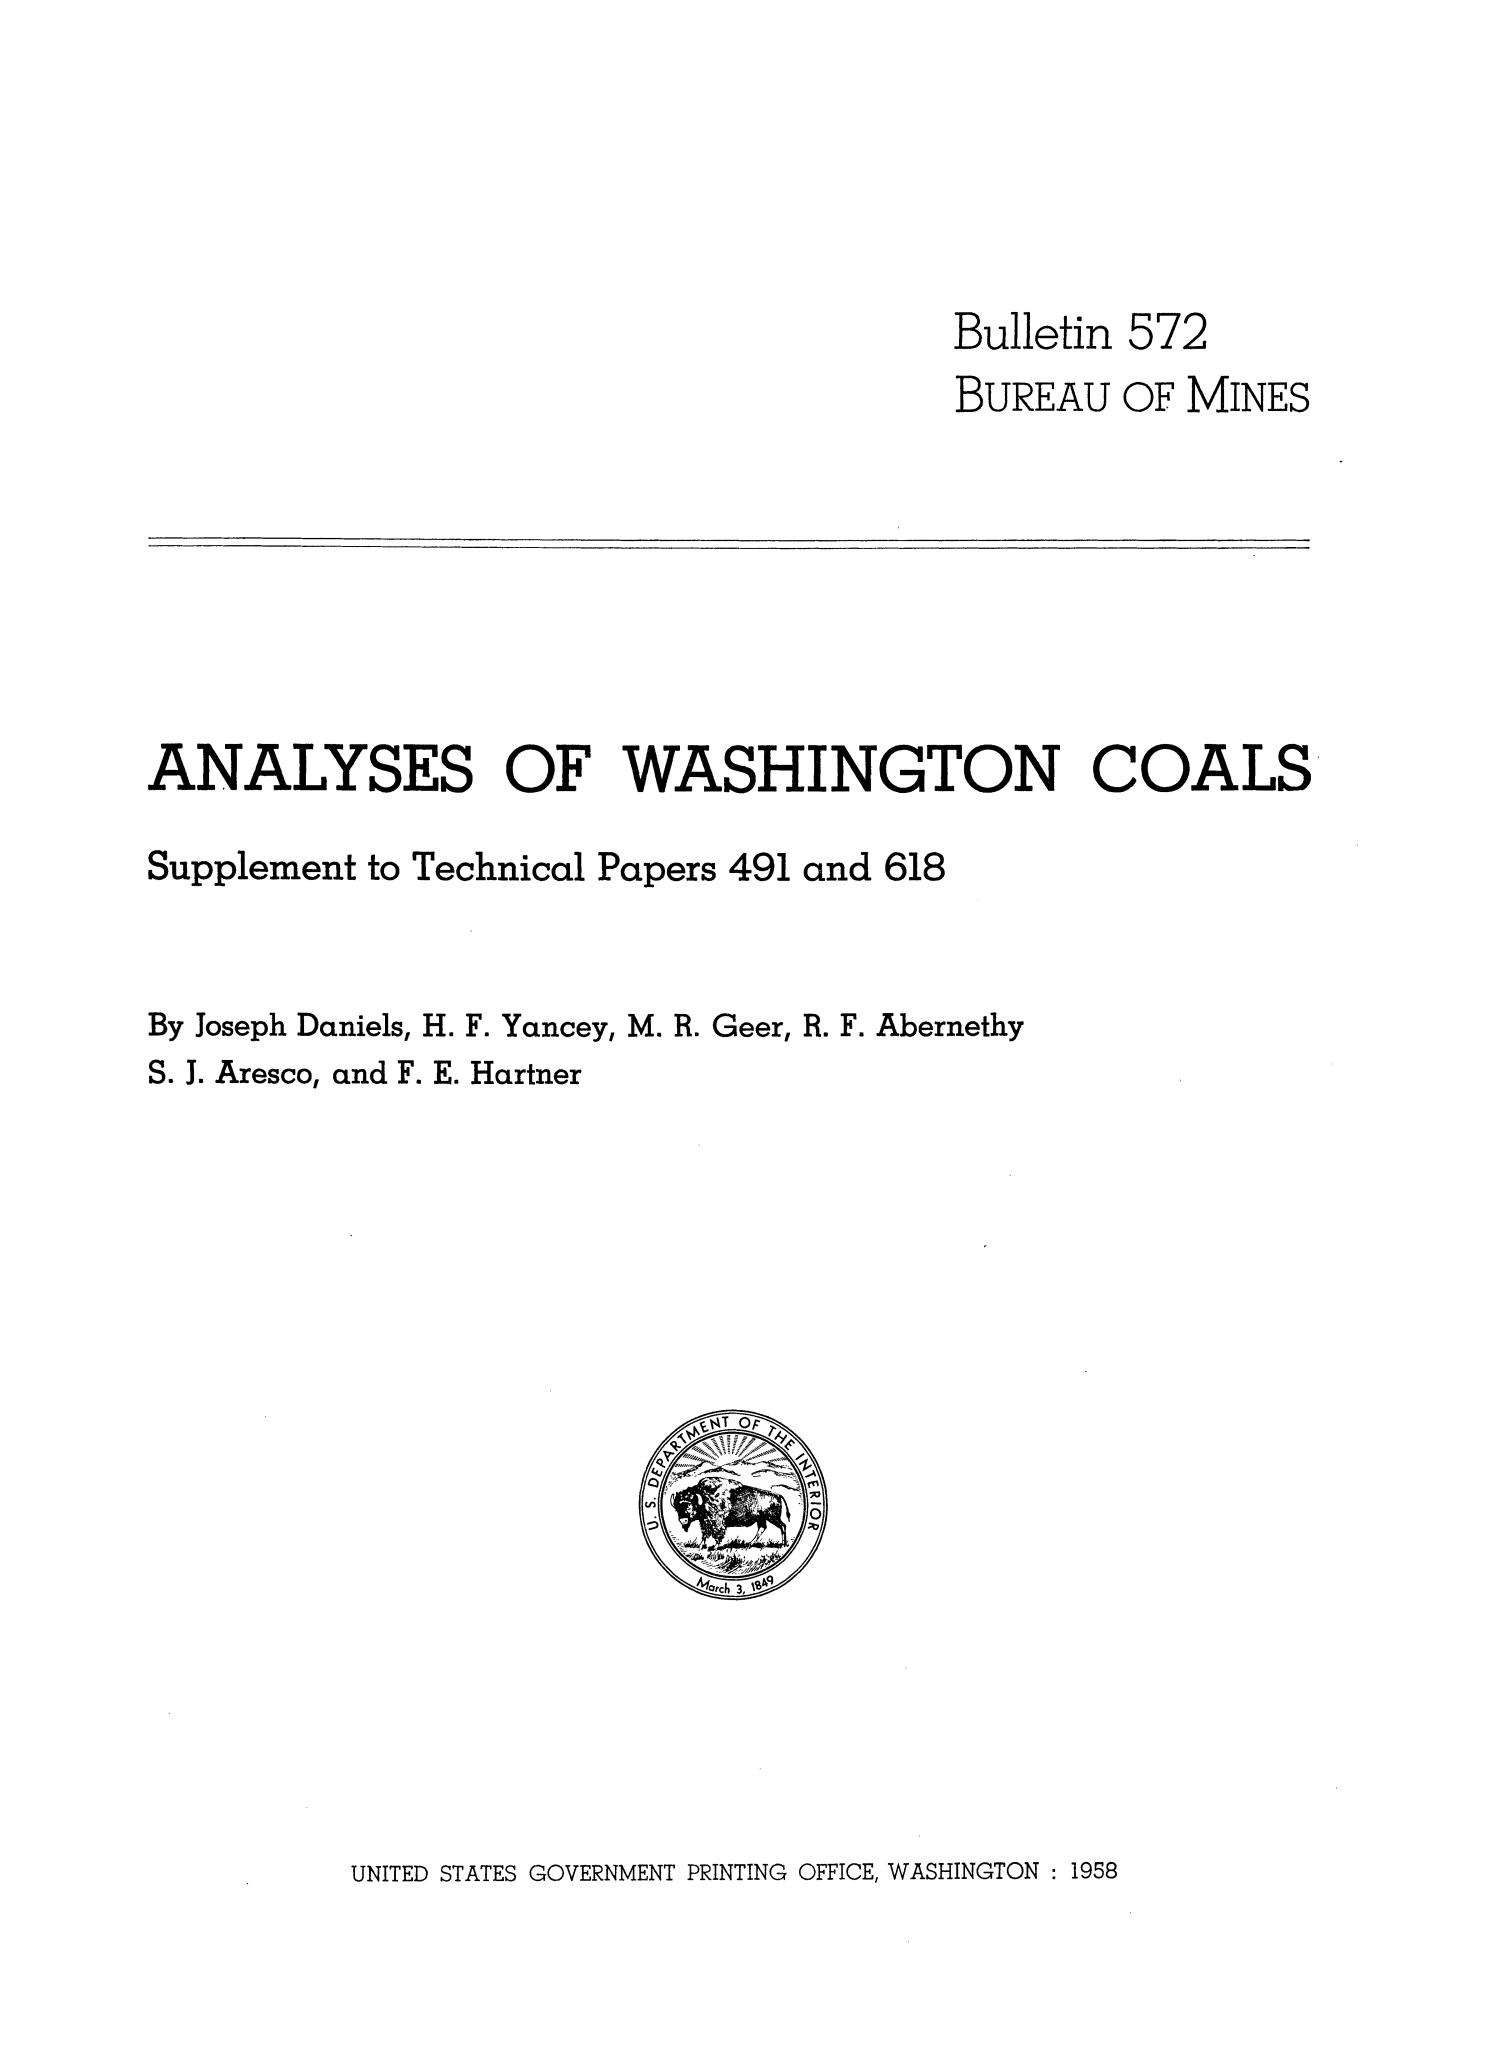 Analyses of Washington Coals: Supplement to Technical Papers 491 and 618                                                                                                      I